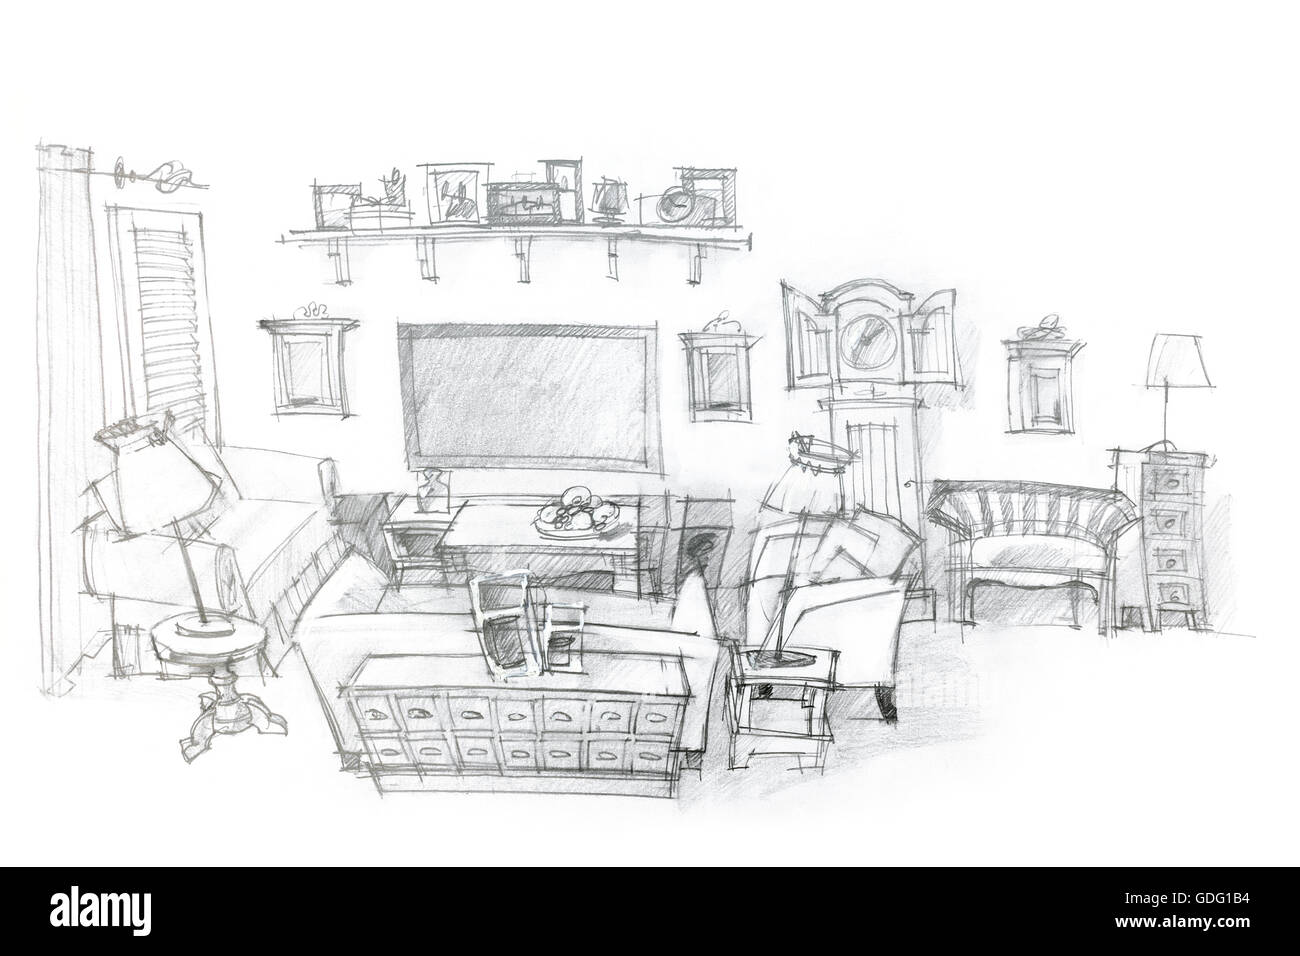 The Line Art And Living : Architectural hand drawing of modern living room interior design